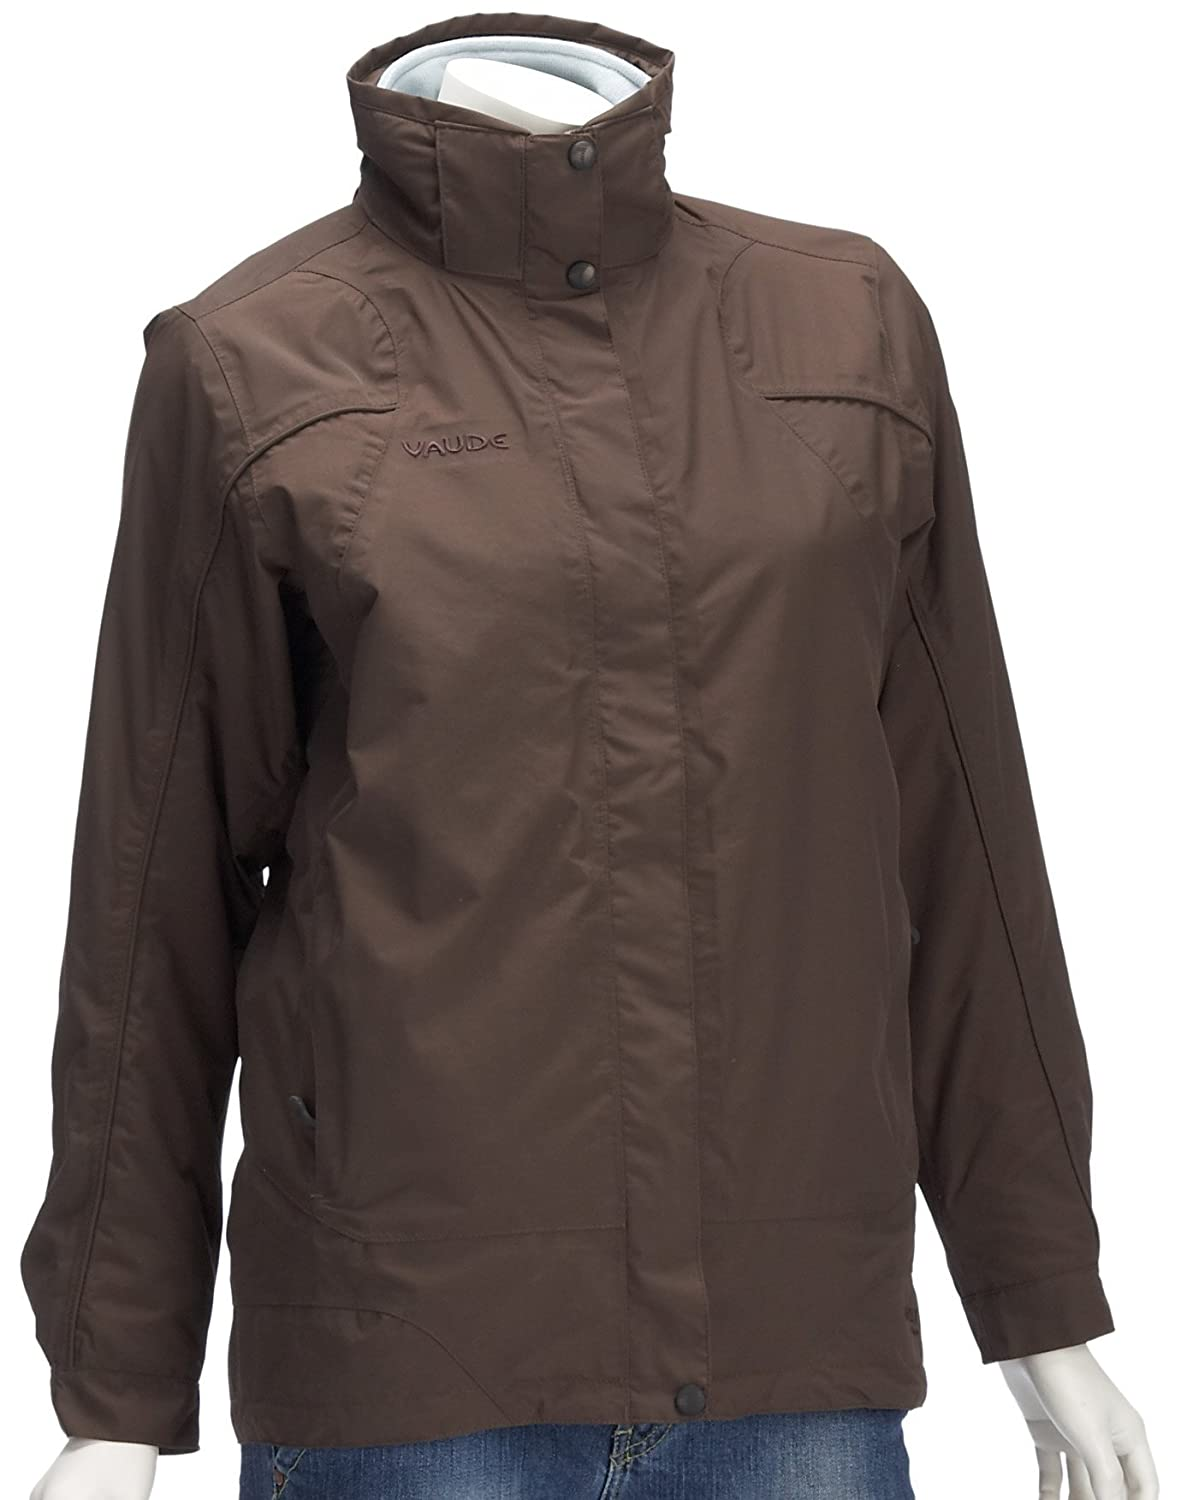 VAUDE Doppeljacke Damen Women's Black Cloud Jacket II günstig kaufen